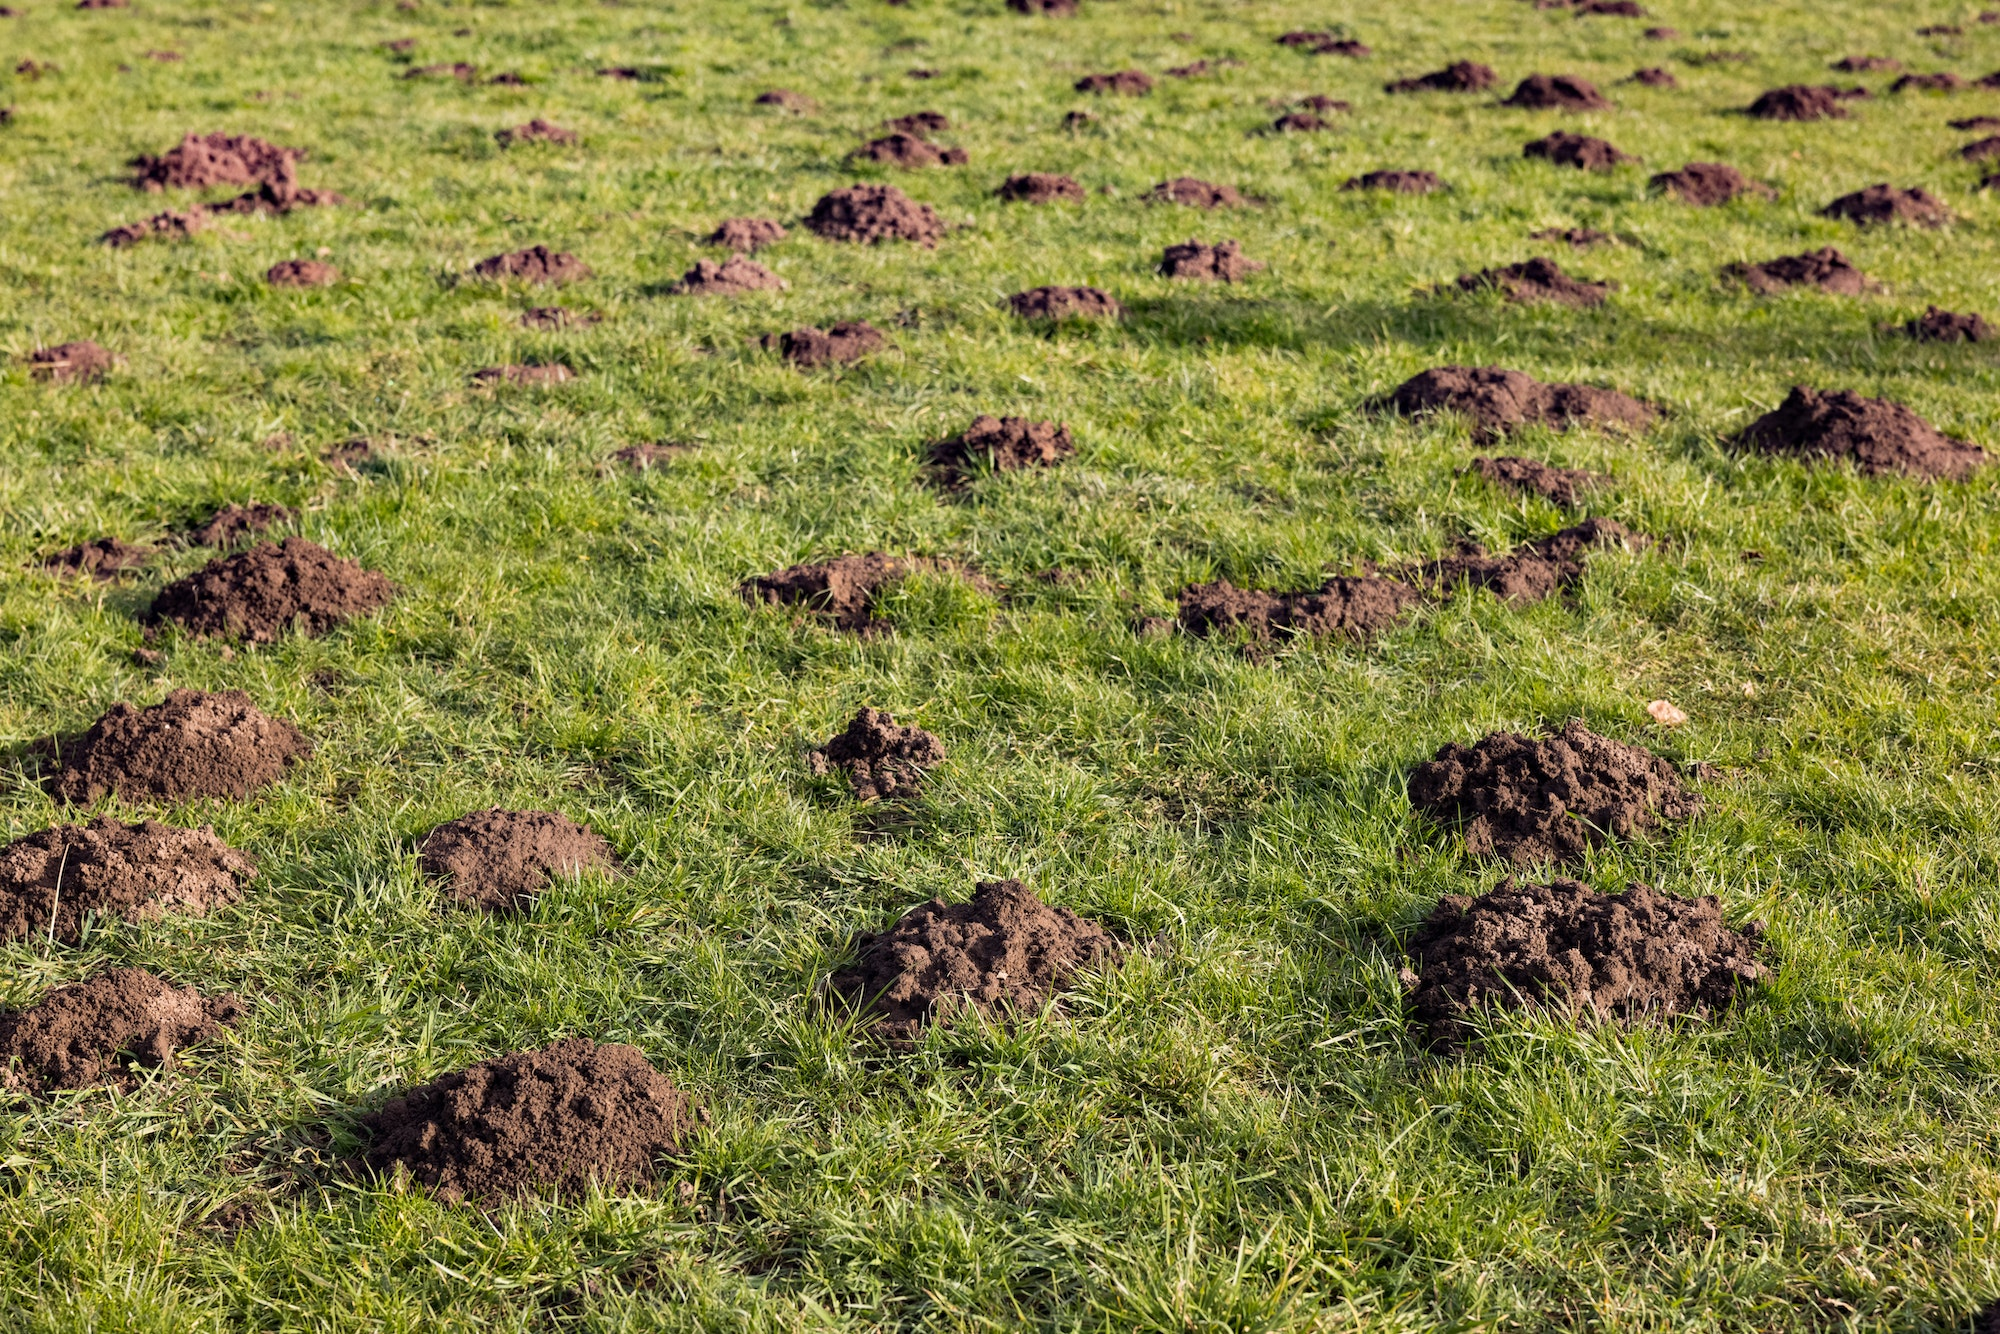 Green grass lawn with small mounds of dark brown dirt pile.